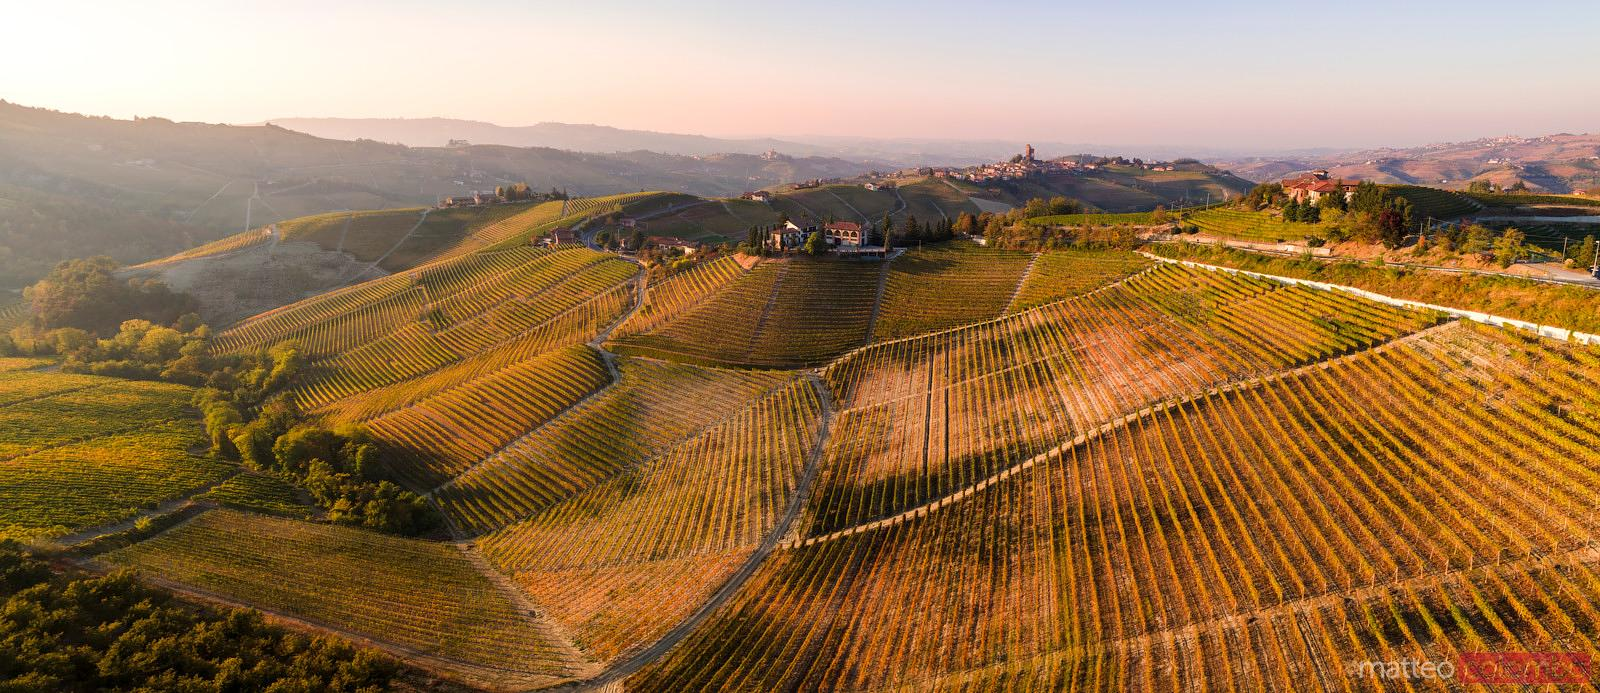 Aerial view over vineyards and town, Piedmont, Italy